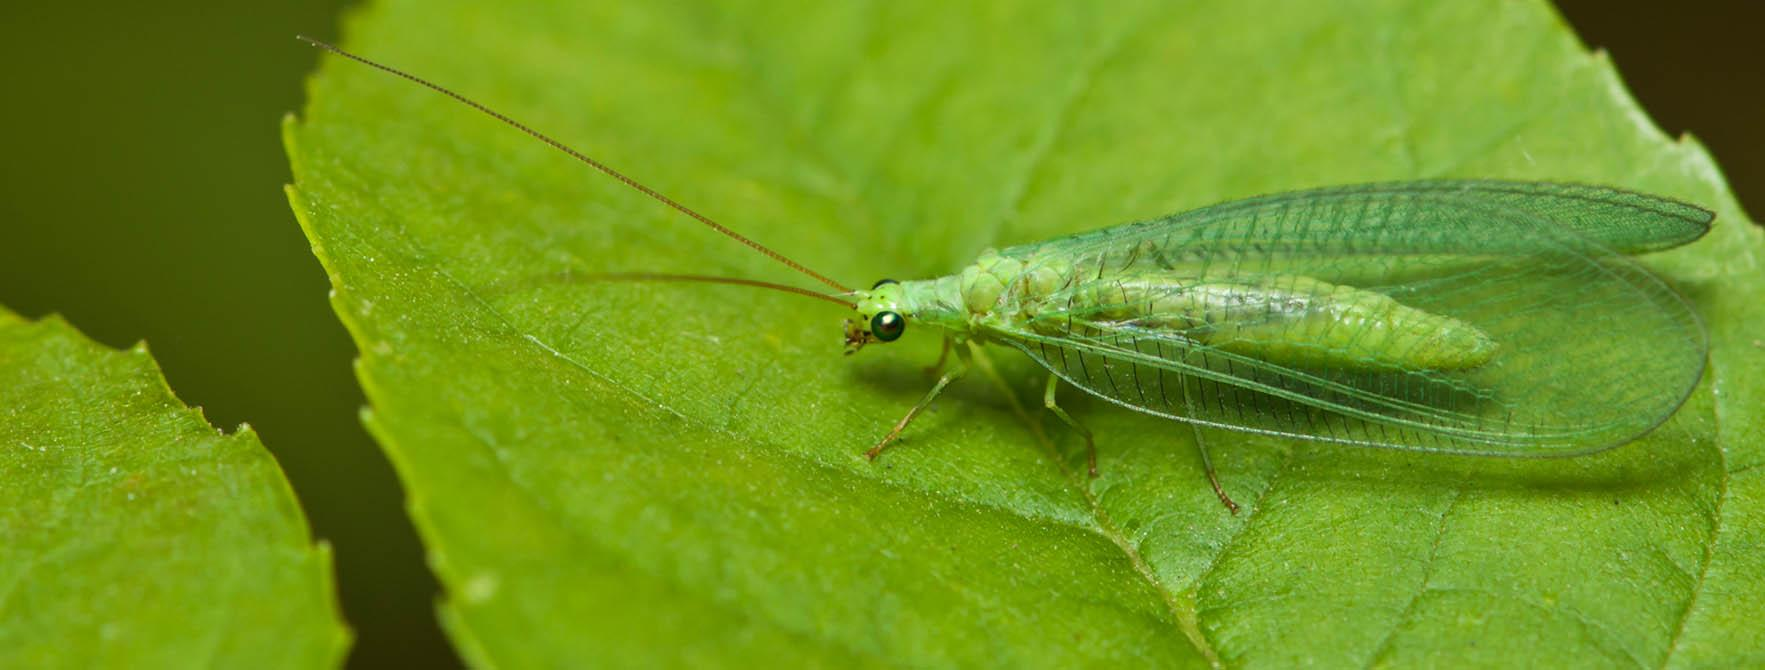 Small Green Flying Bugs Lacewing Fly Facts Clear Wings